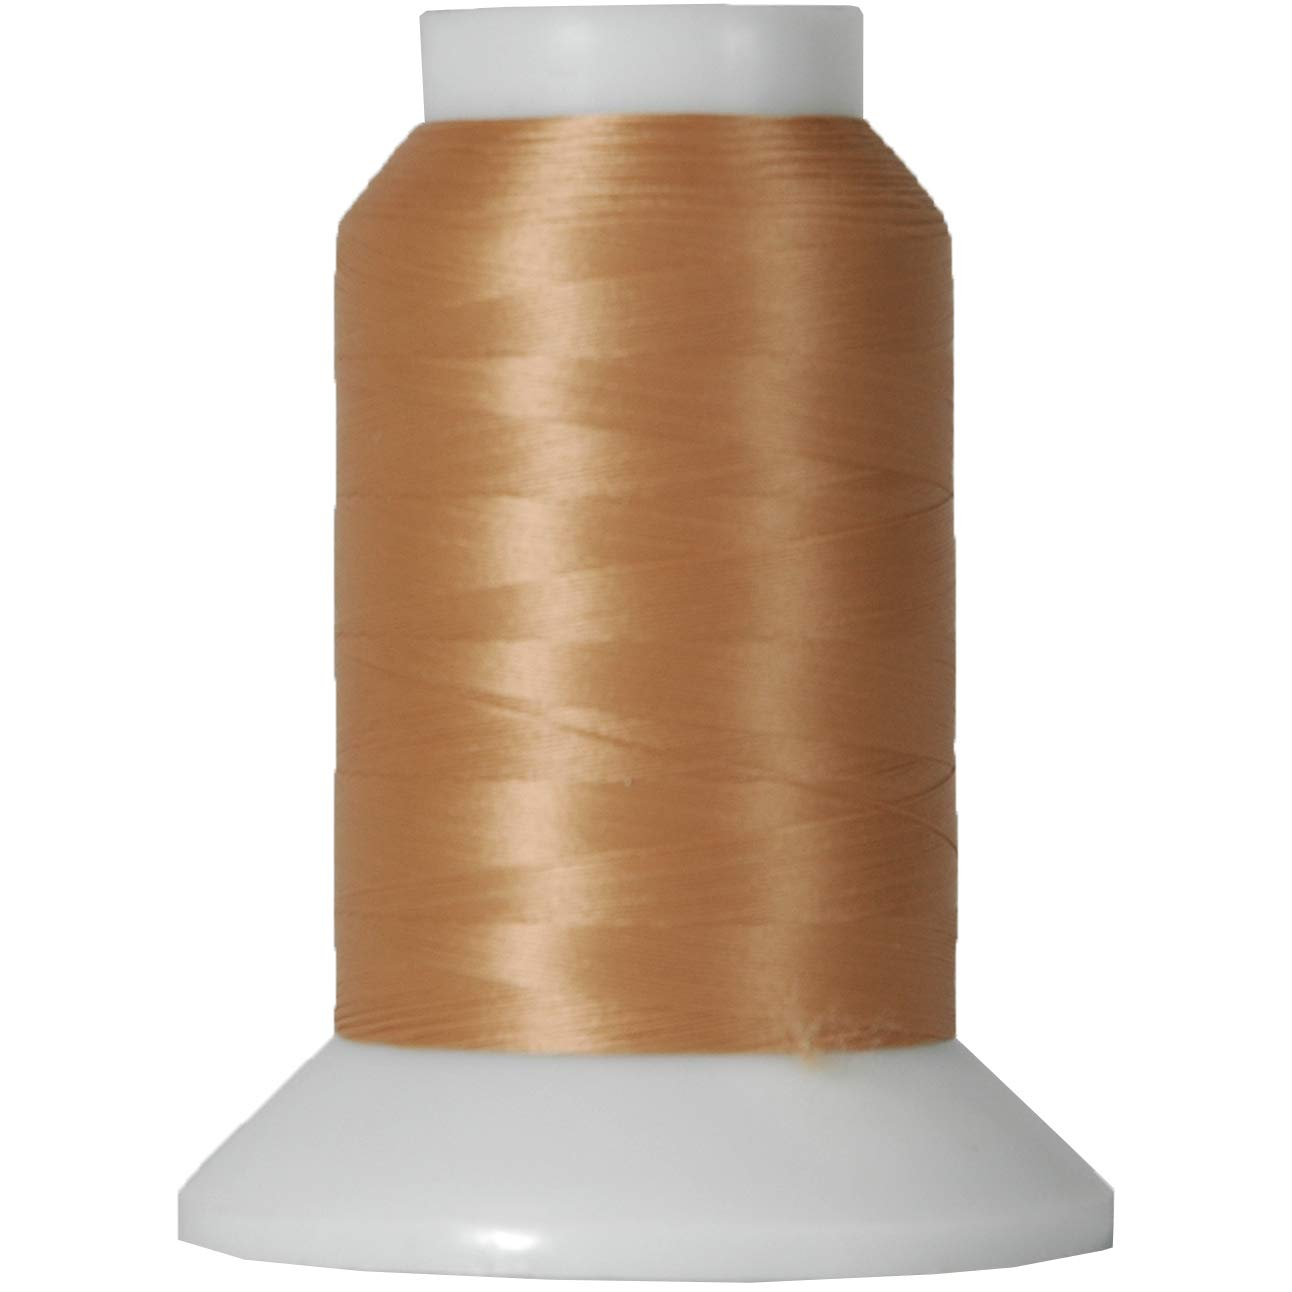 DK TAUPE Threadart Wooly Nylon Thread Serger Sewing Stretchy Thread 50 Colors Available Color 9179 1000m Spools